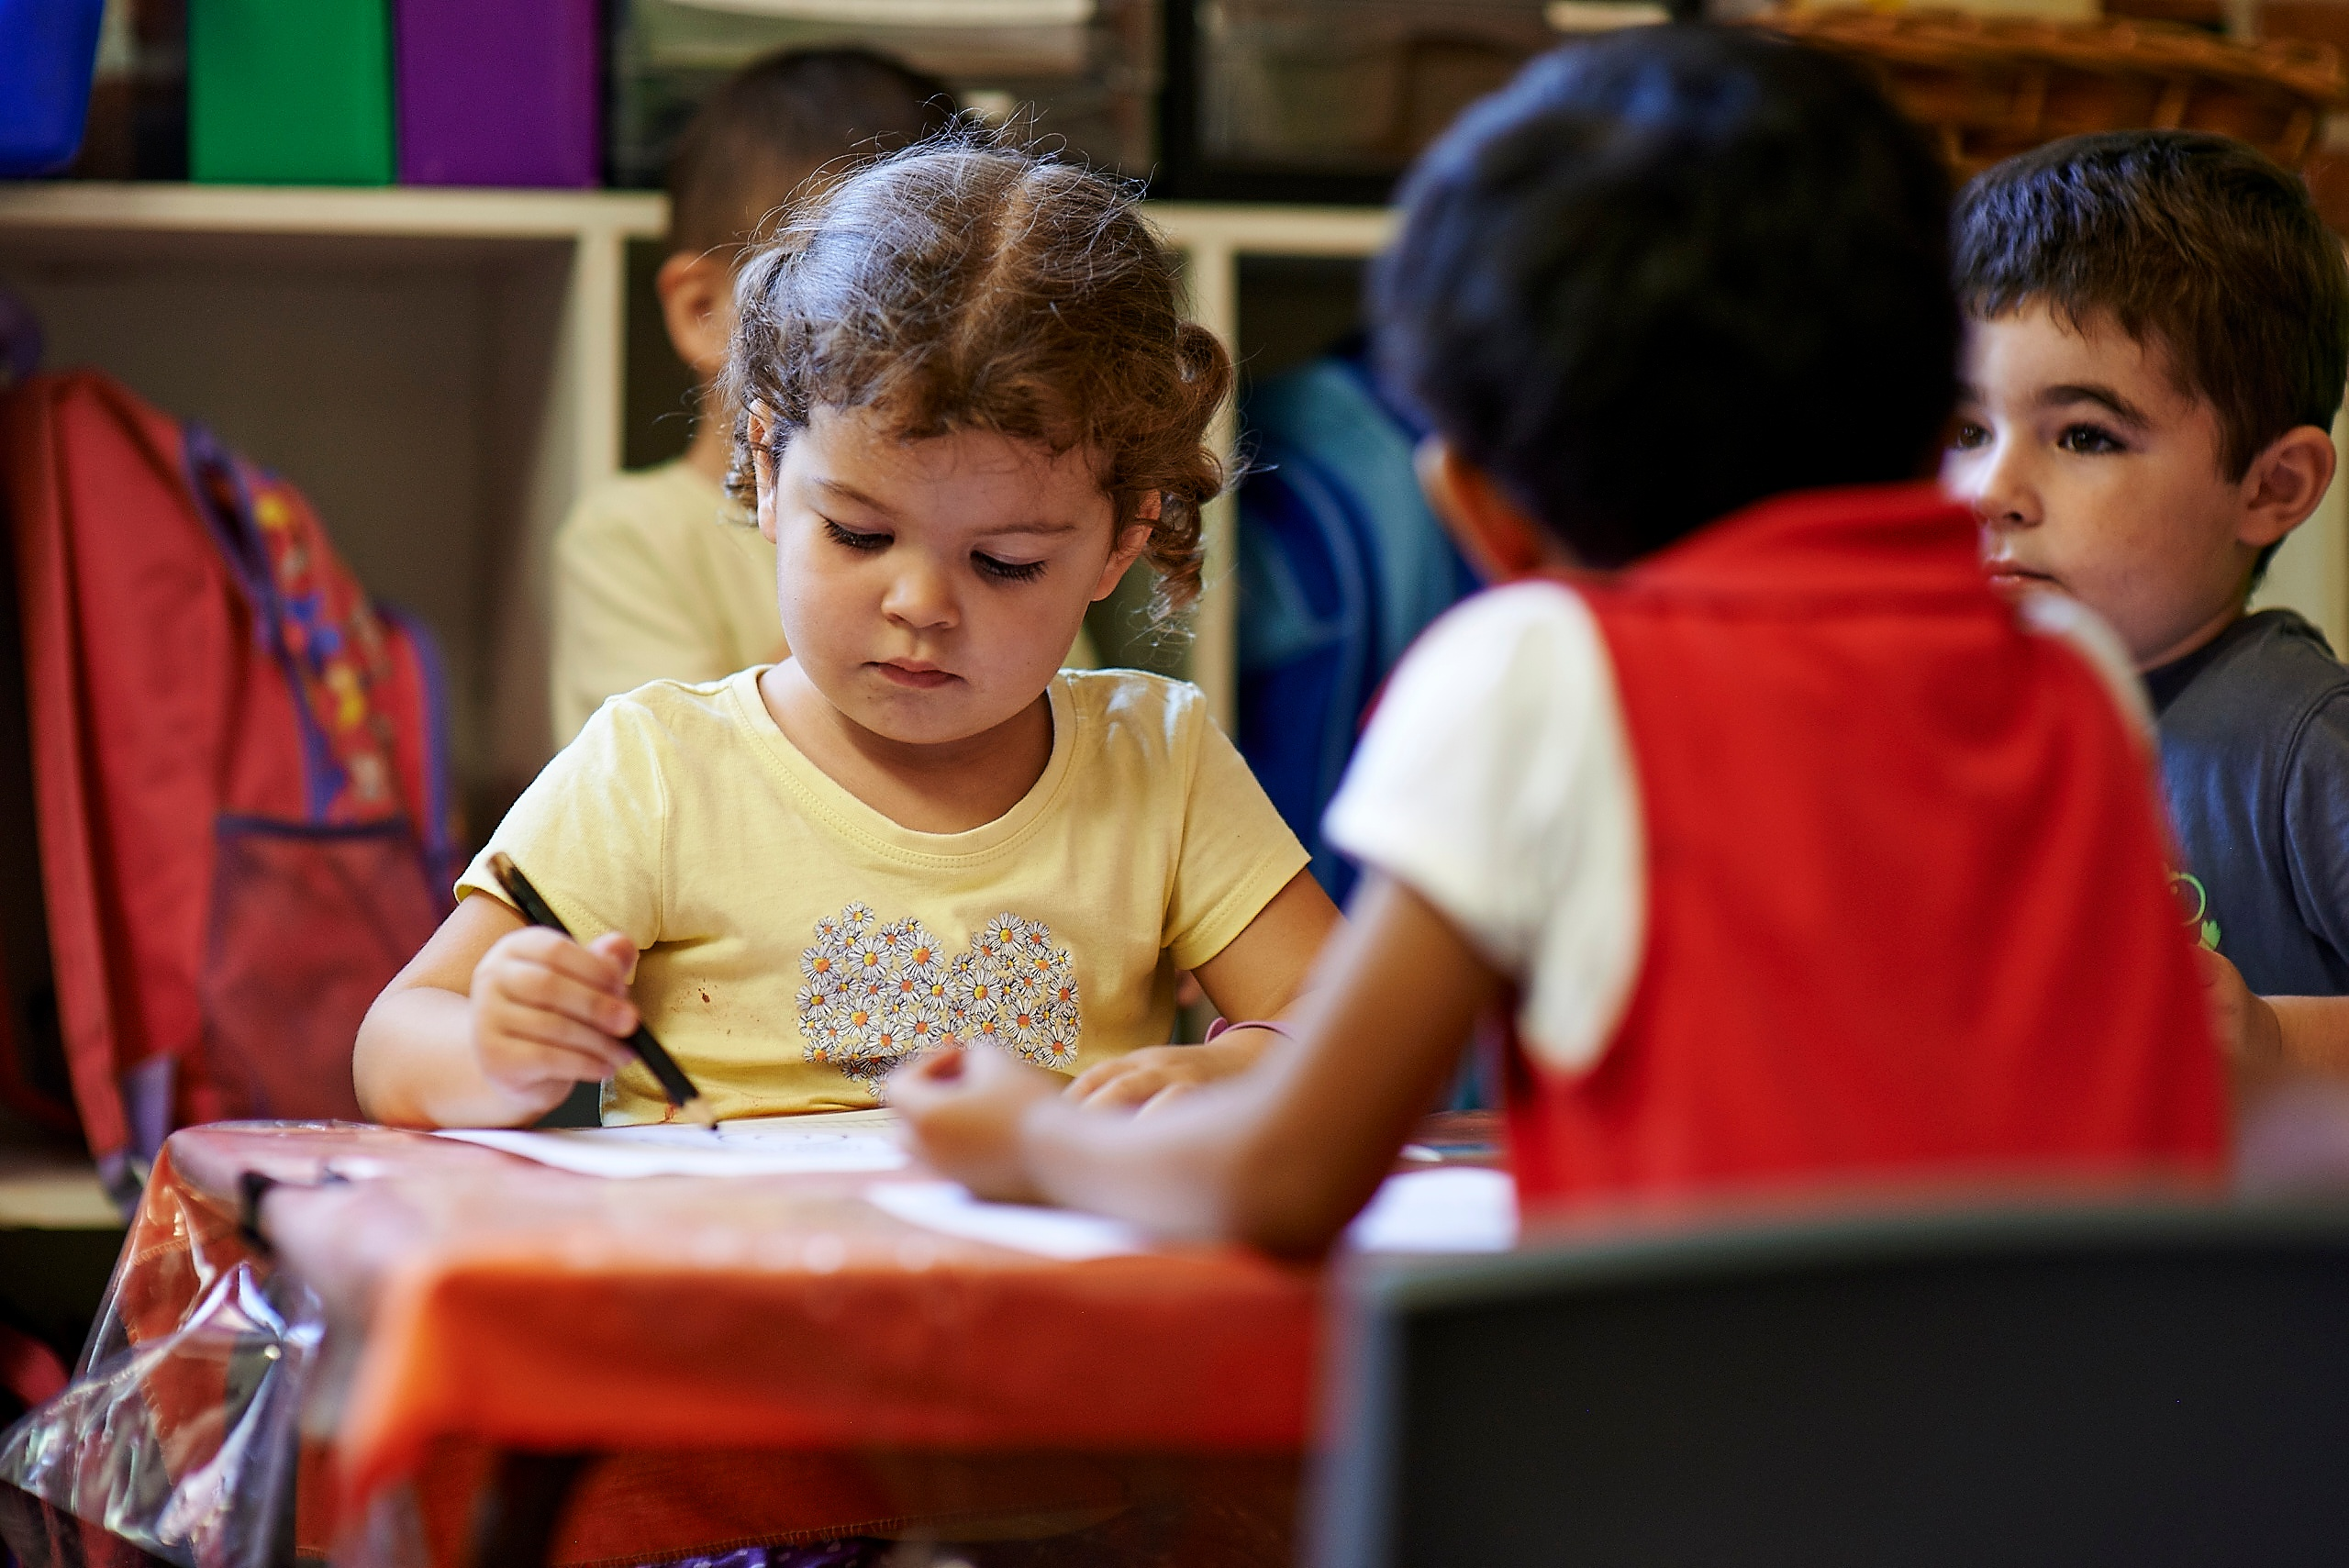 Facilitating the development of speech in young children